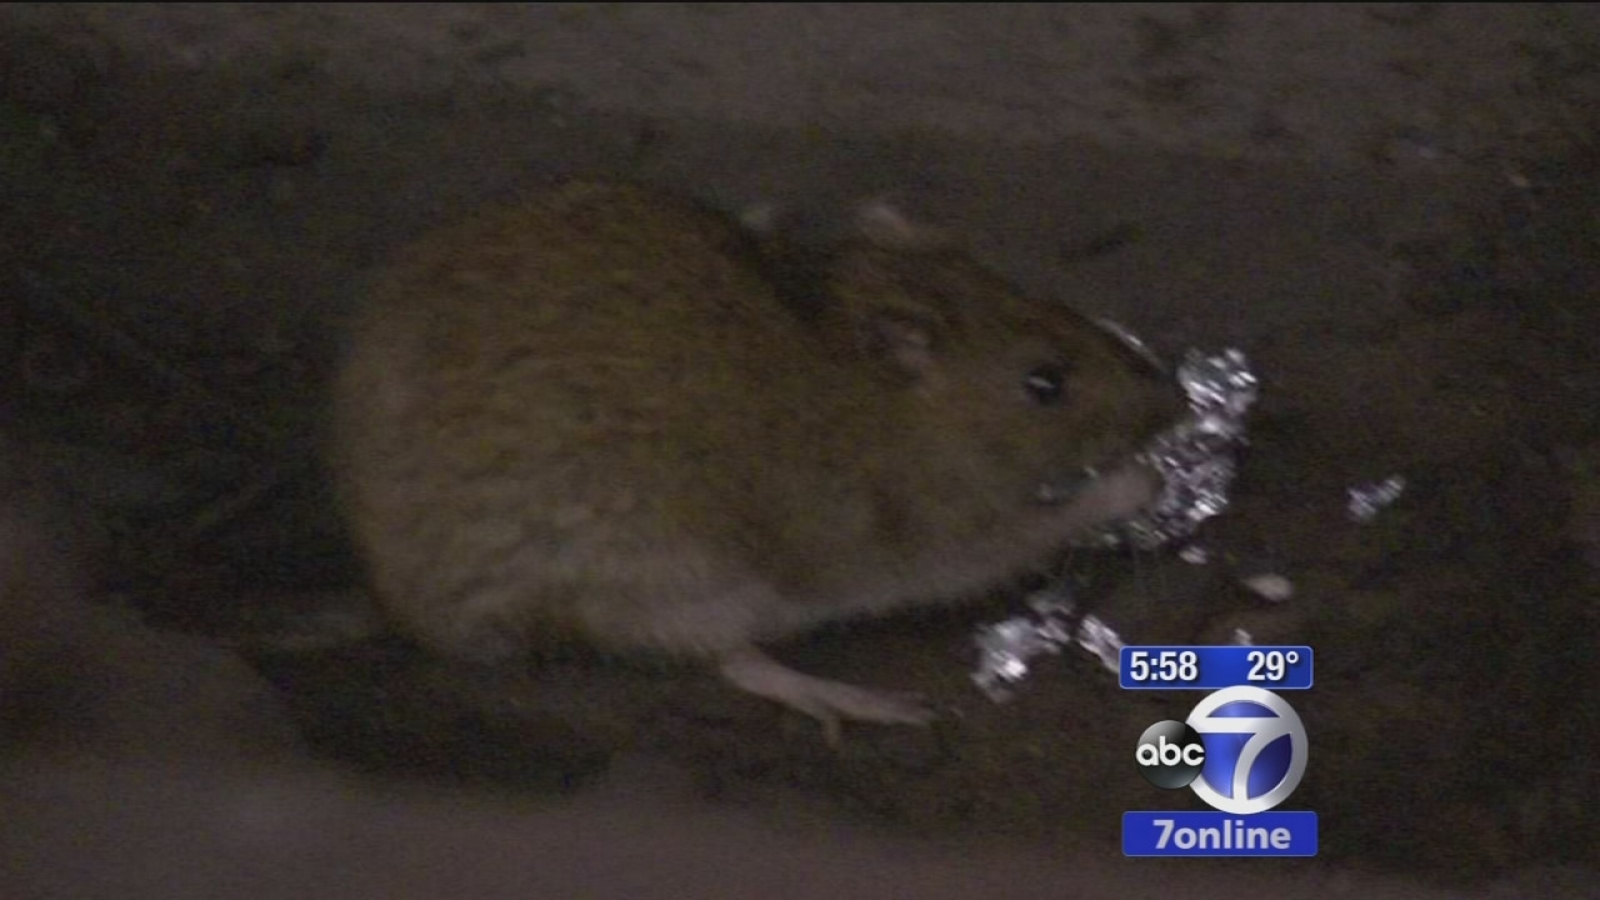 Disgusting Diseases Transmitted From Fleas On New York City Rats And Other Rodents Abc7 New York